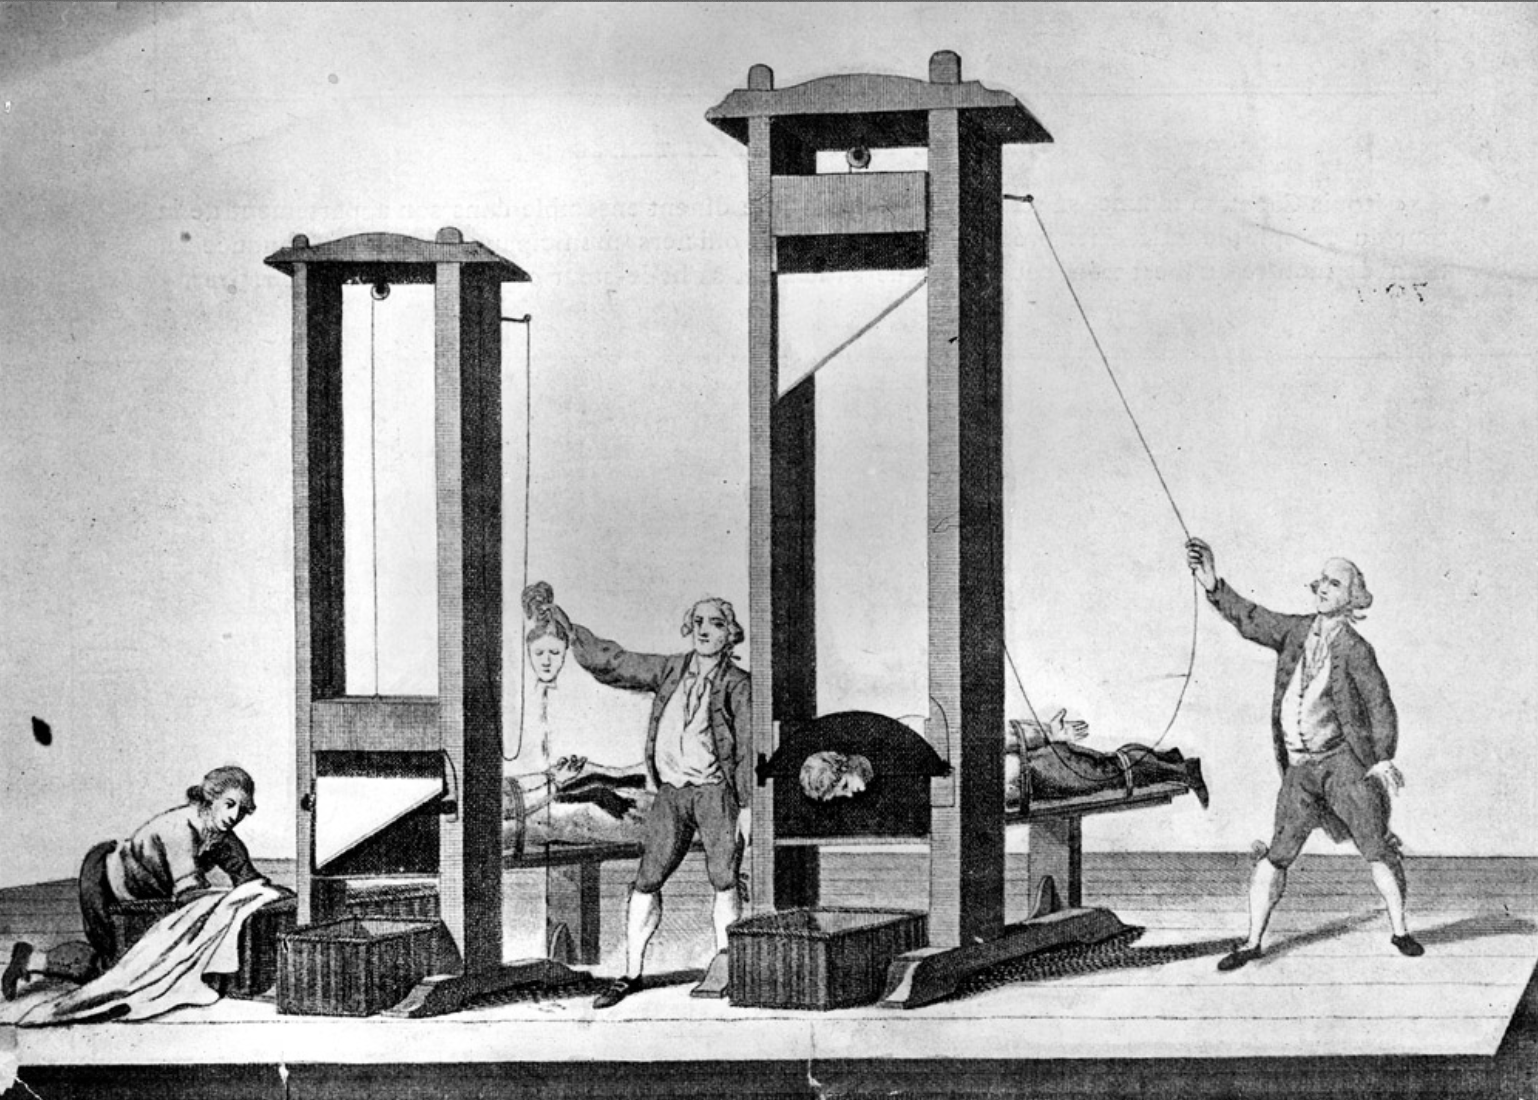 execution_guillotine_beheading.png